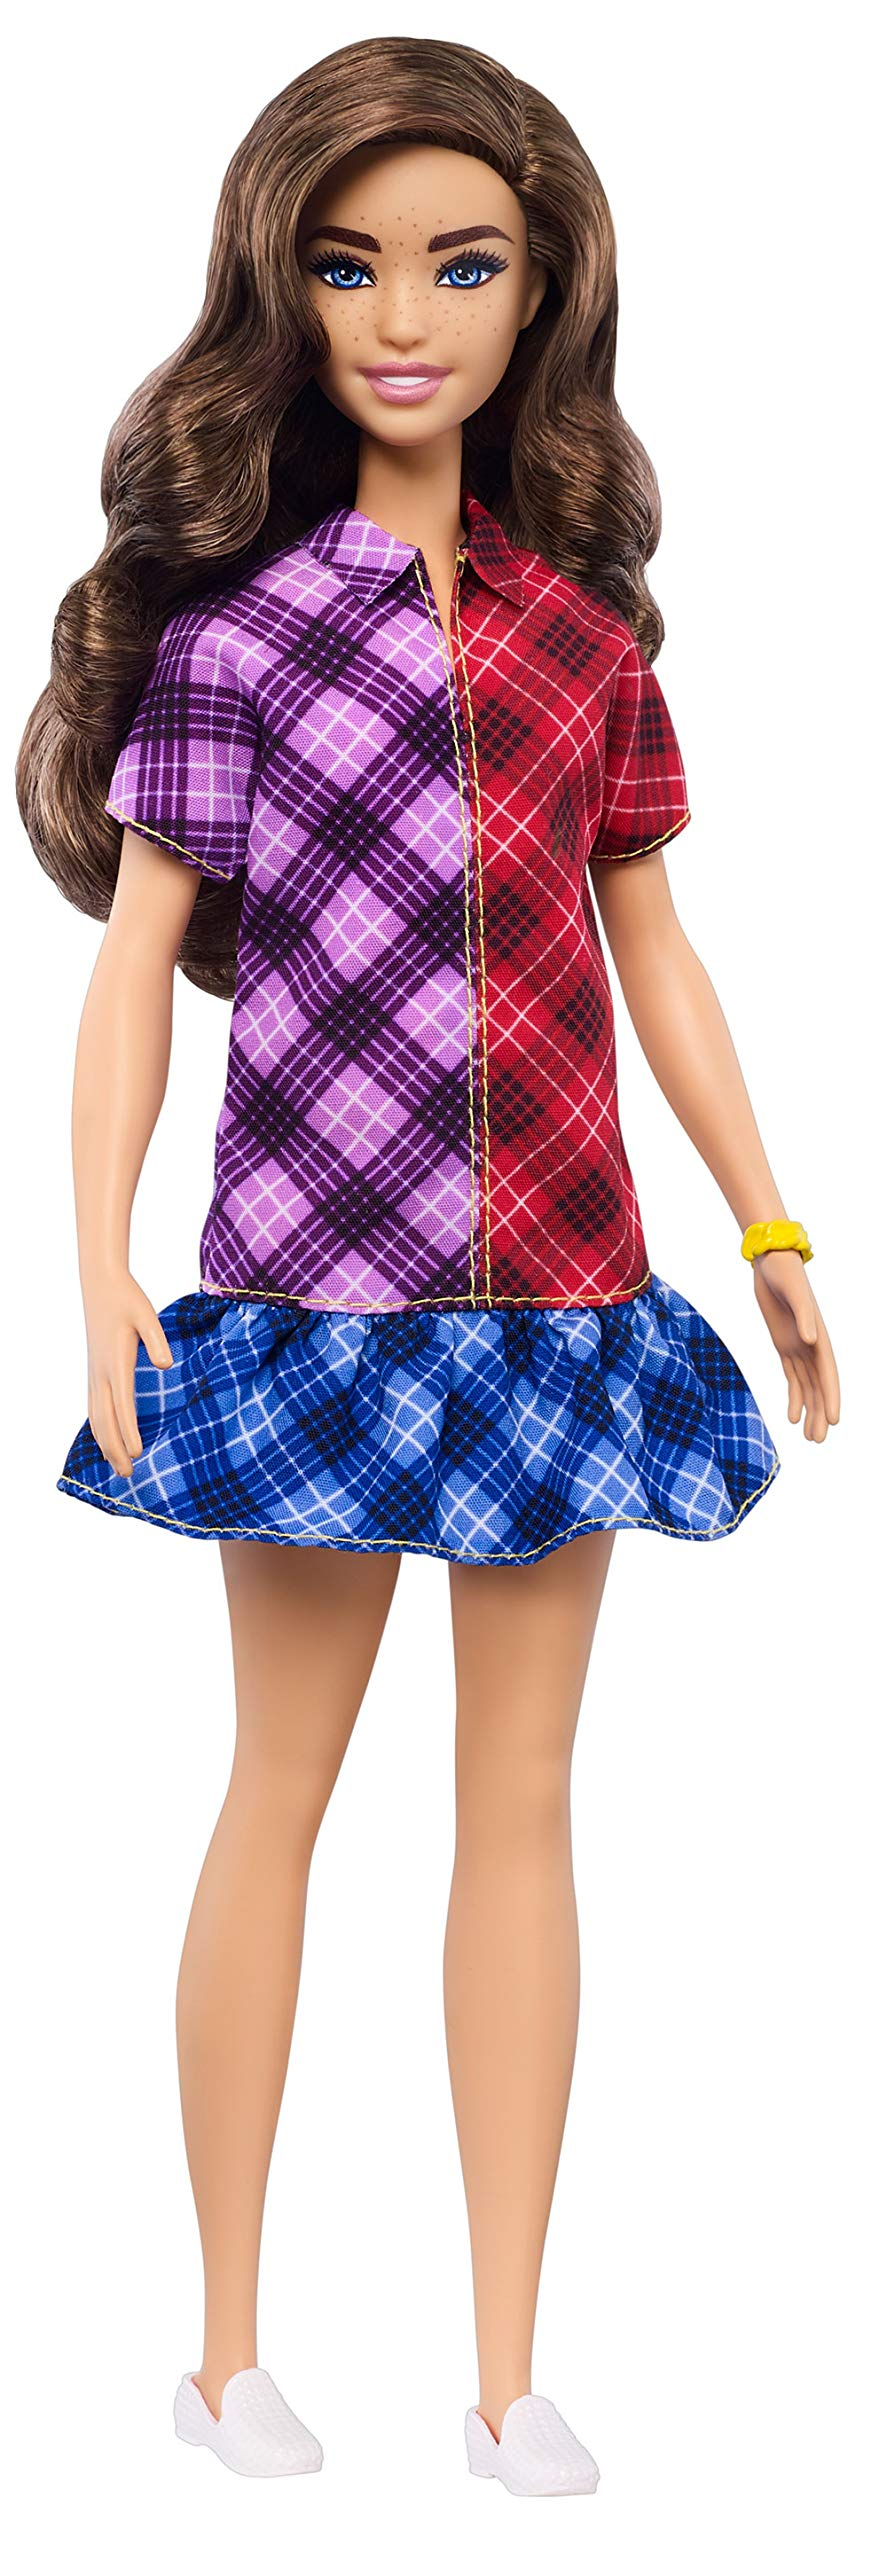 Barbie Fashionistas Doll with Long Brunette Hair Wearing Color-Blocked Plaid Dress and Accessories, for 3 to 8 Year Olds 